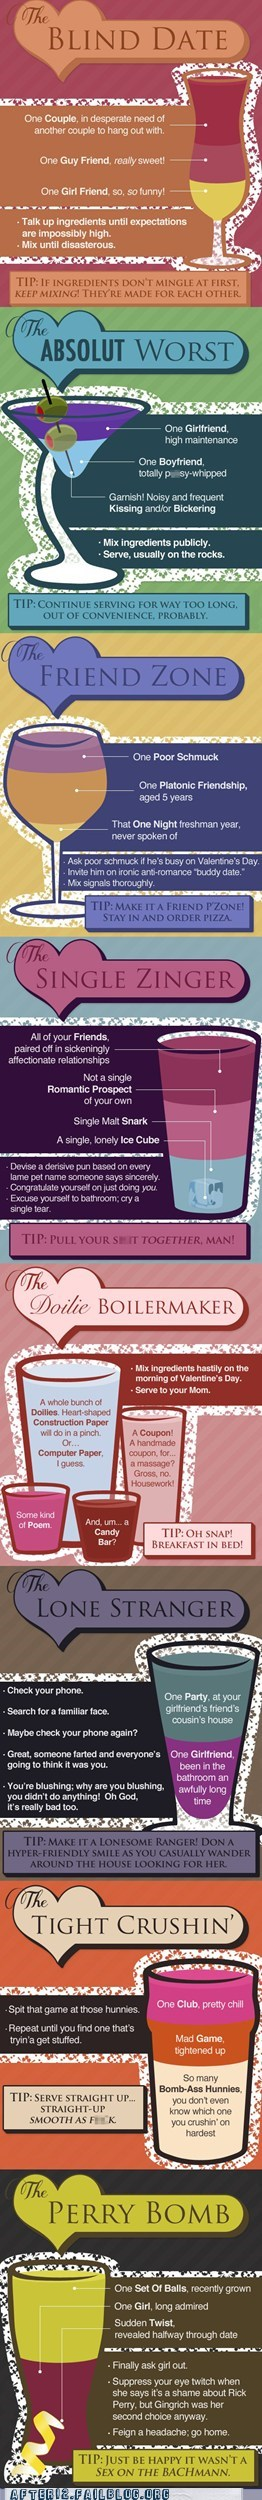 blind date drinking forever alone friend zone infographic - 5813239808